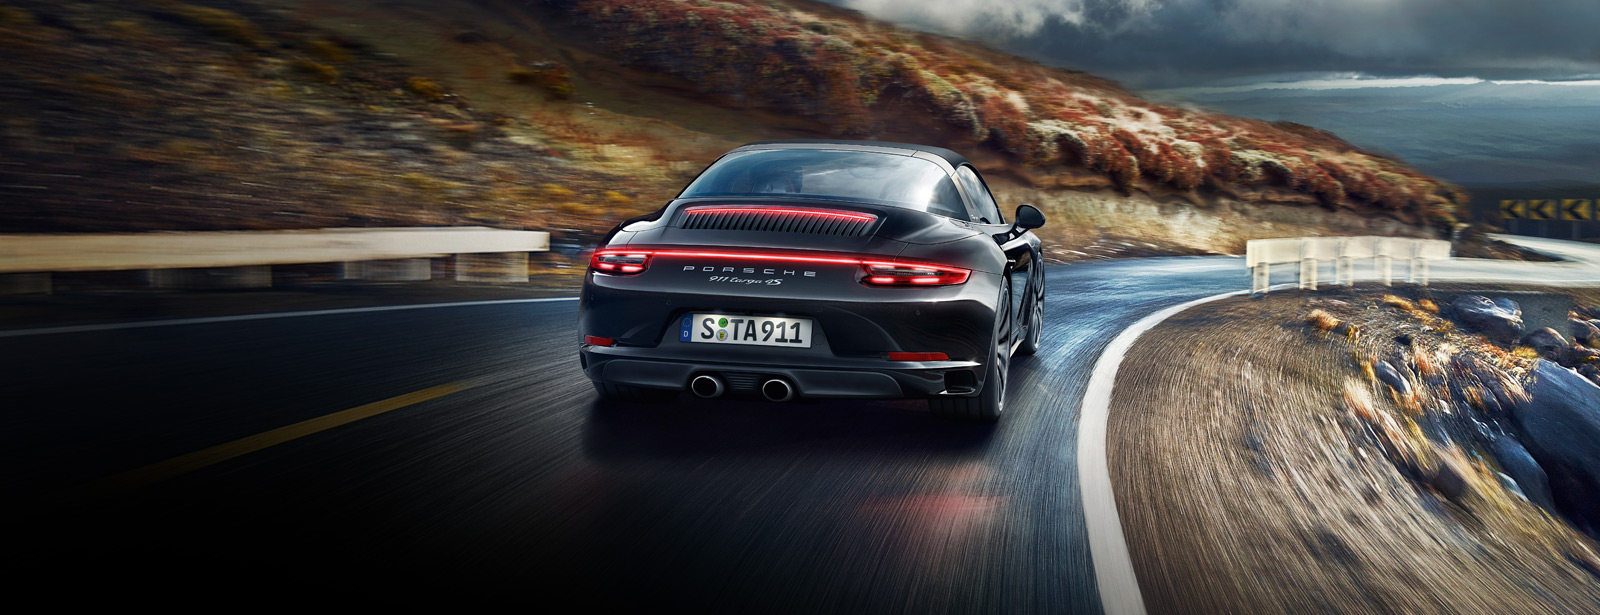 Porsche The new 911 Targa 4S